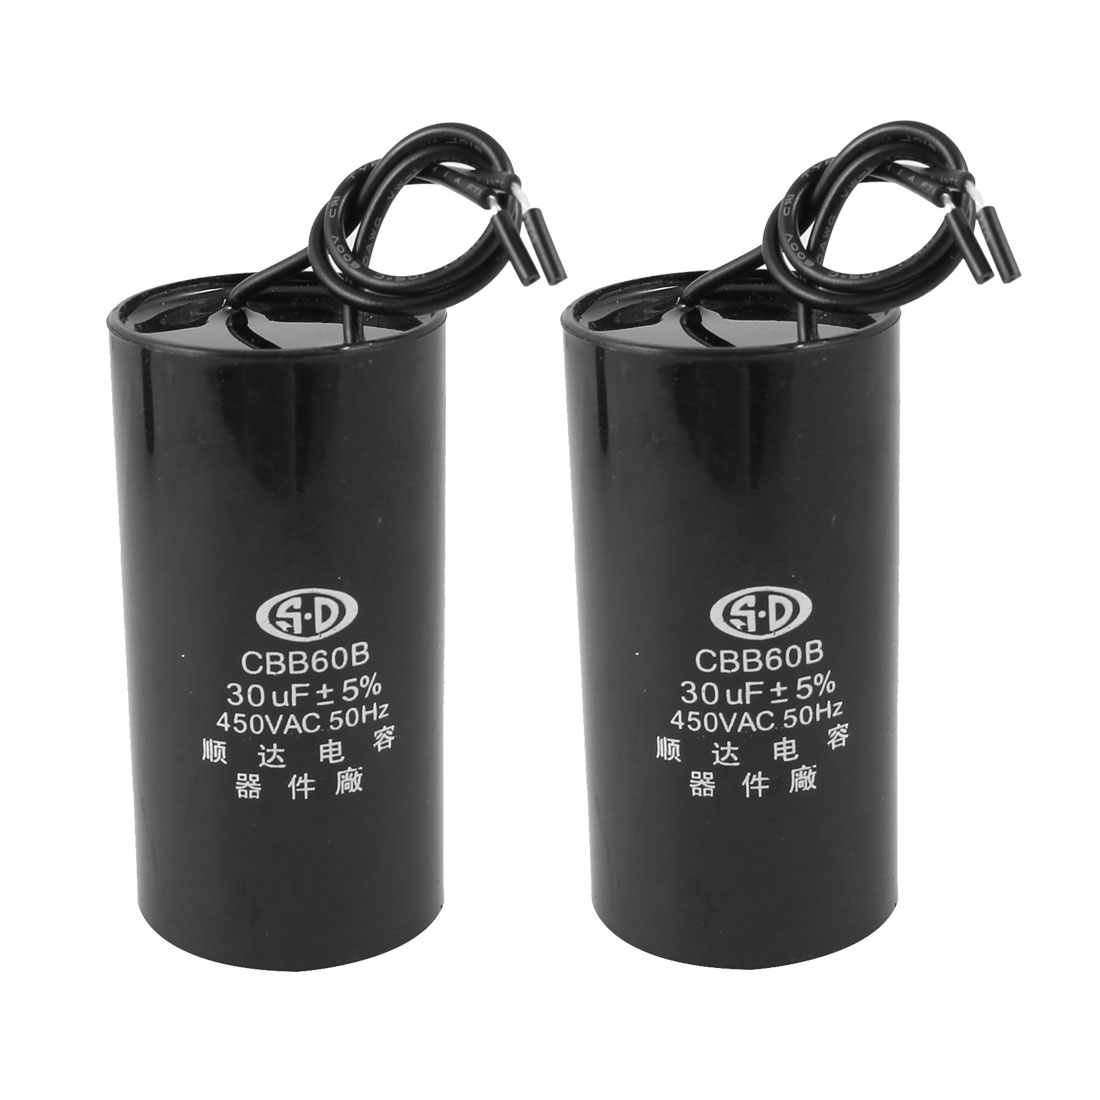 AC 450V Cylinder 30uF 2 Wired Motor Run Capacitor CBB60B Black 2pcs